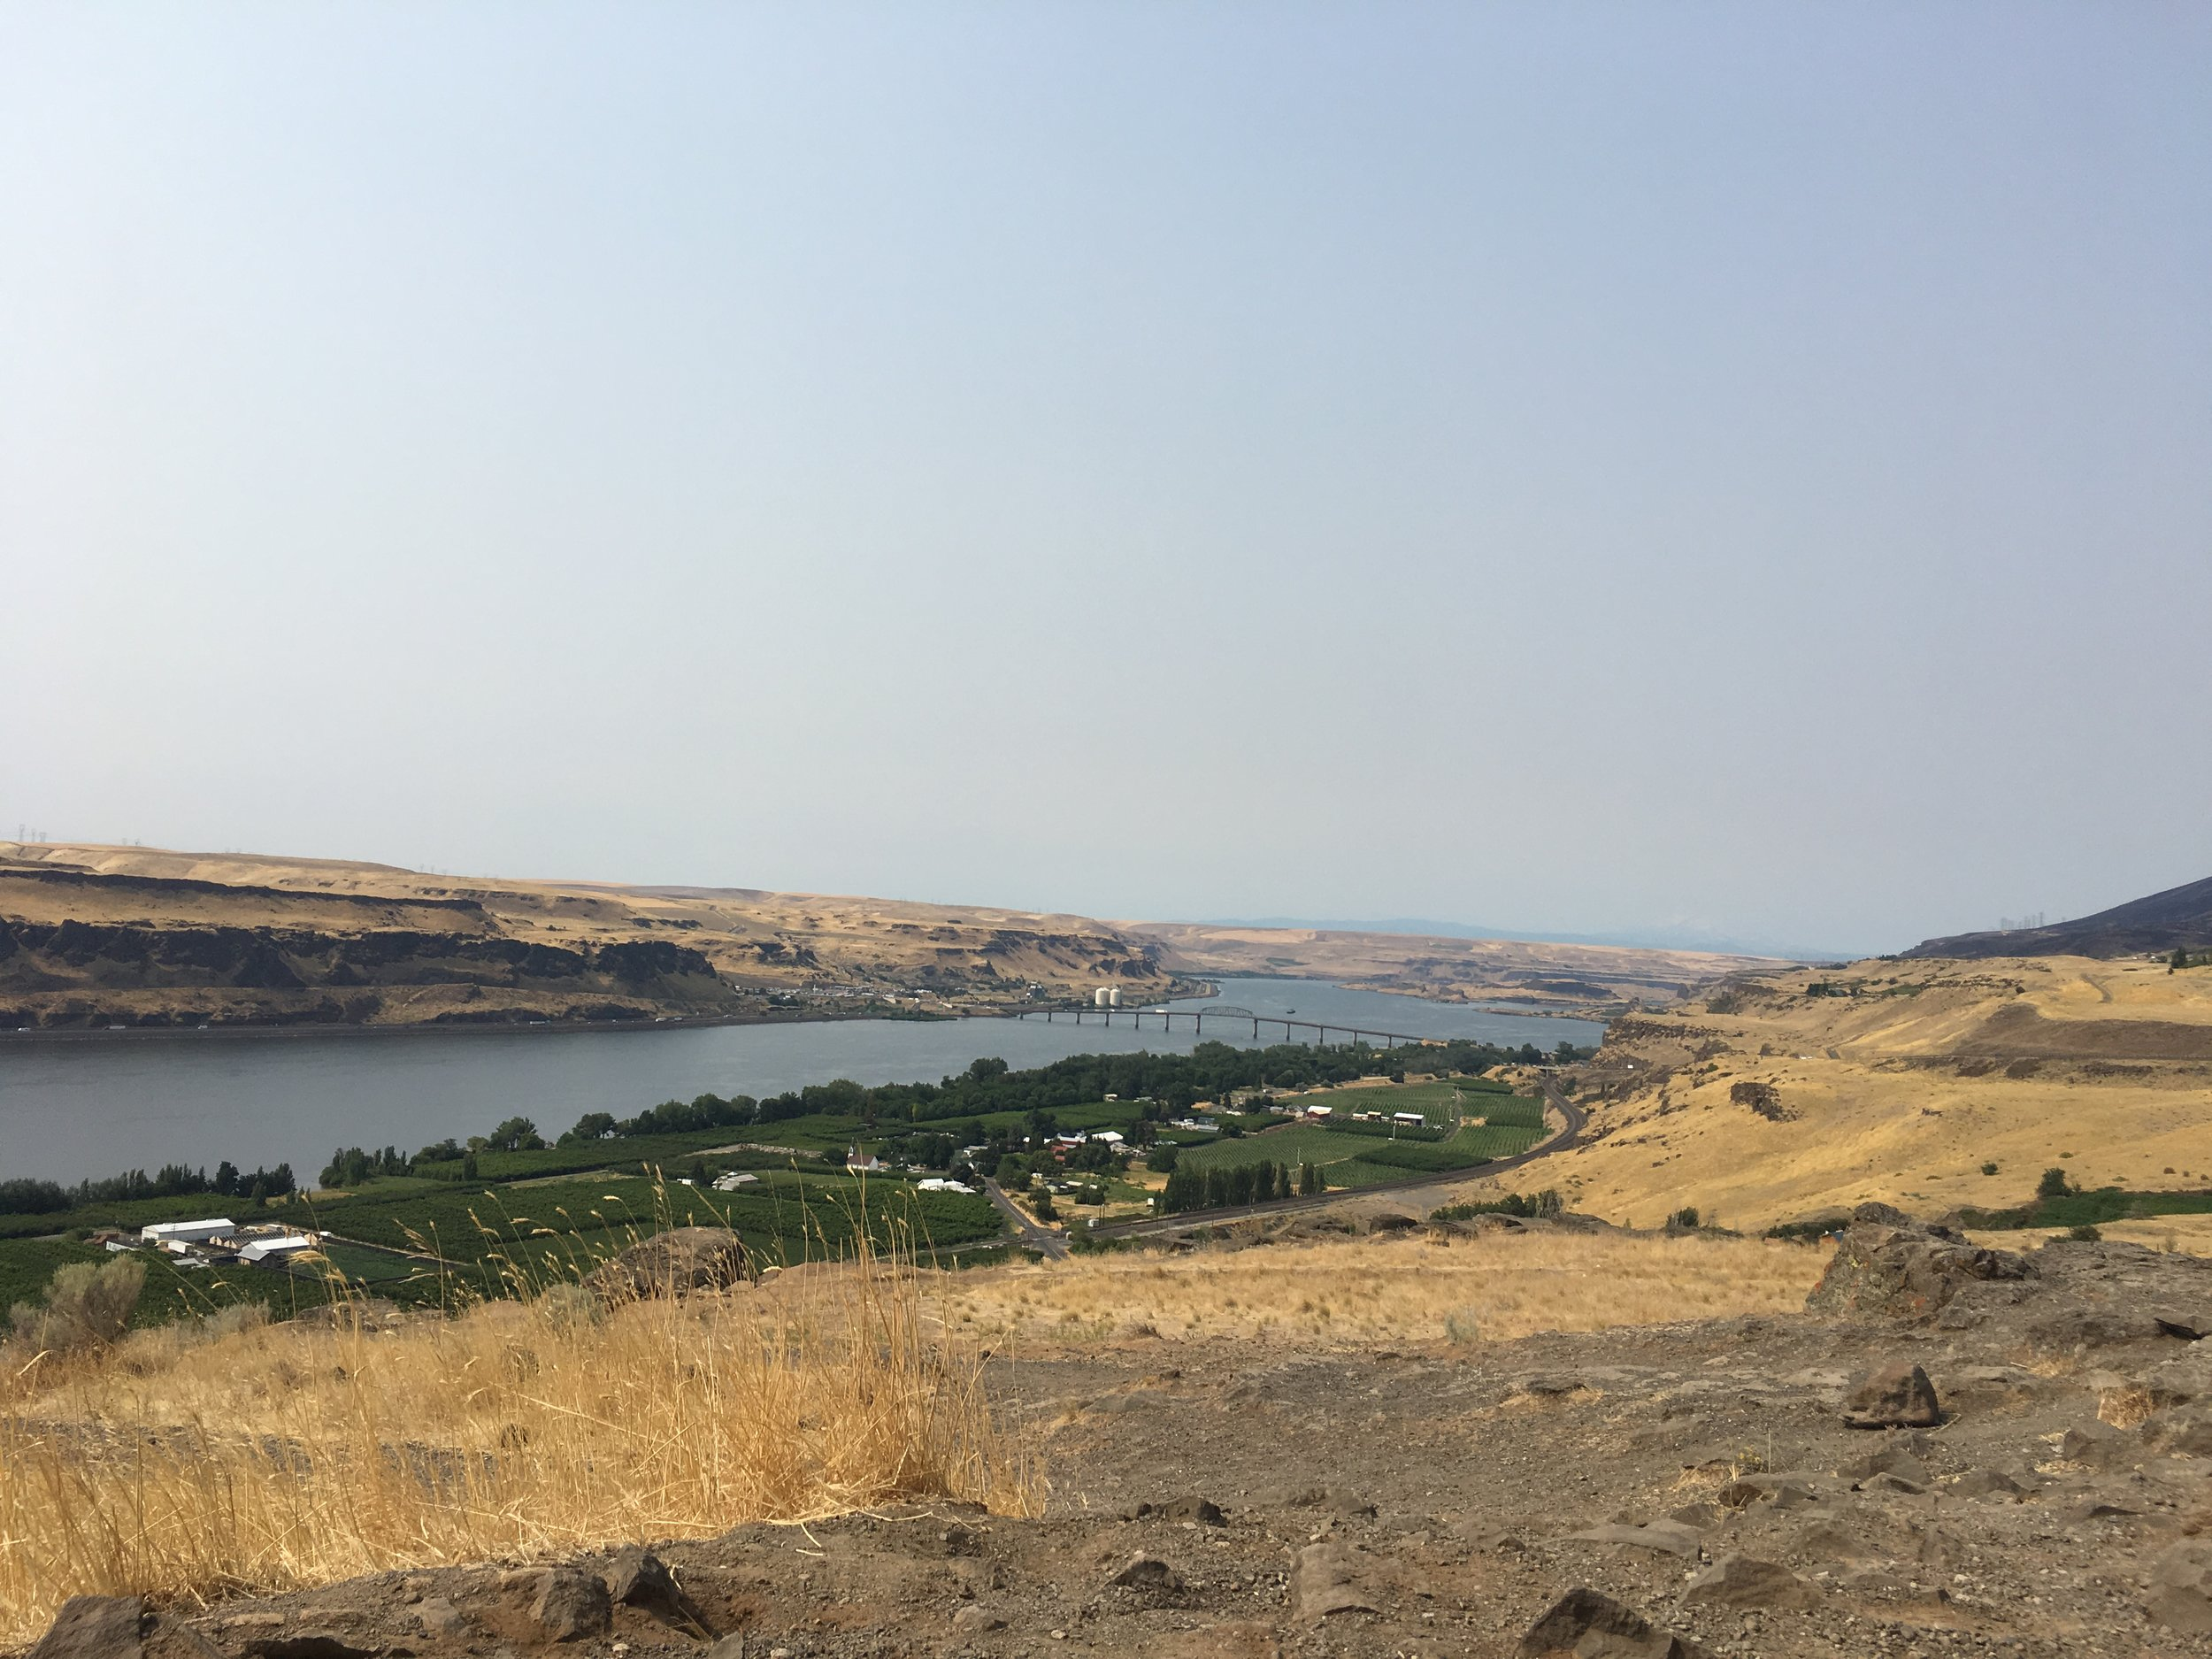 Hazy days in the Gorge.  You should normally be able to see Wy'east (Mt. Hood) clearly from this vantage point.